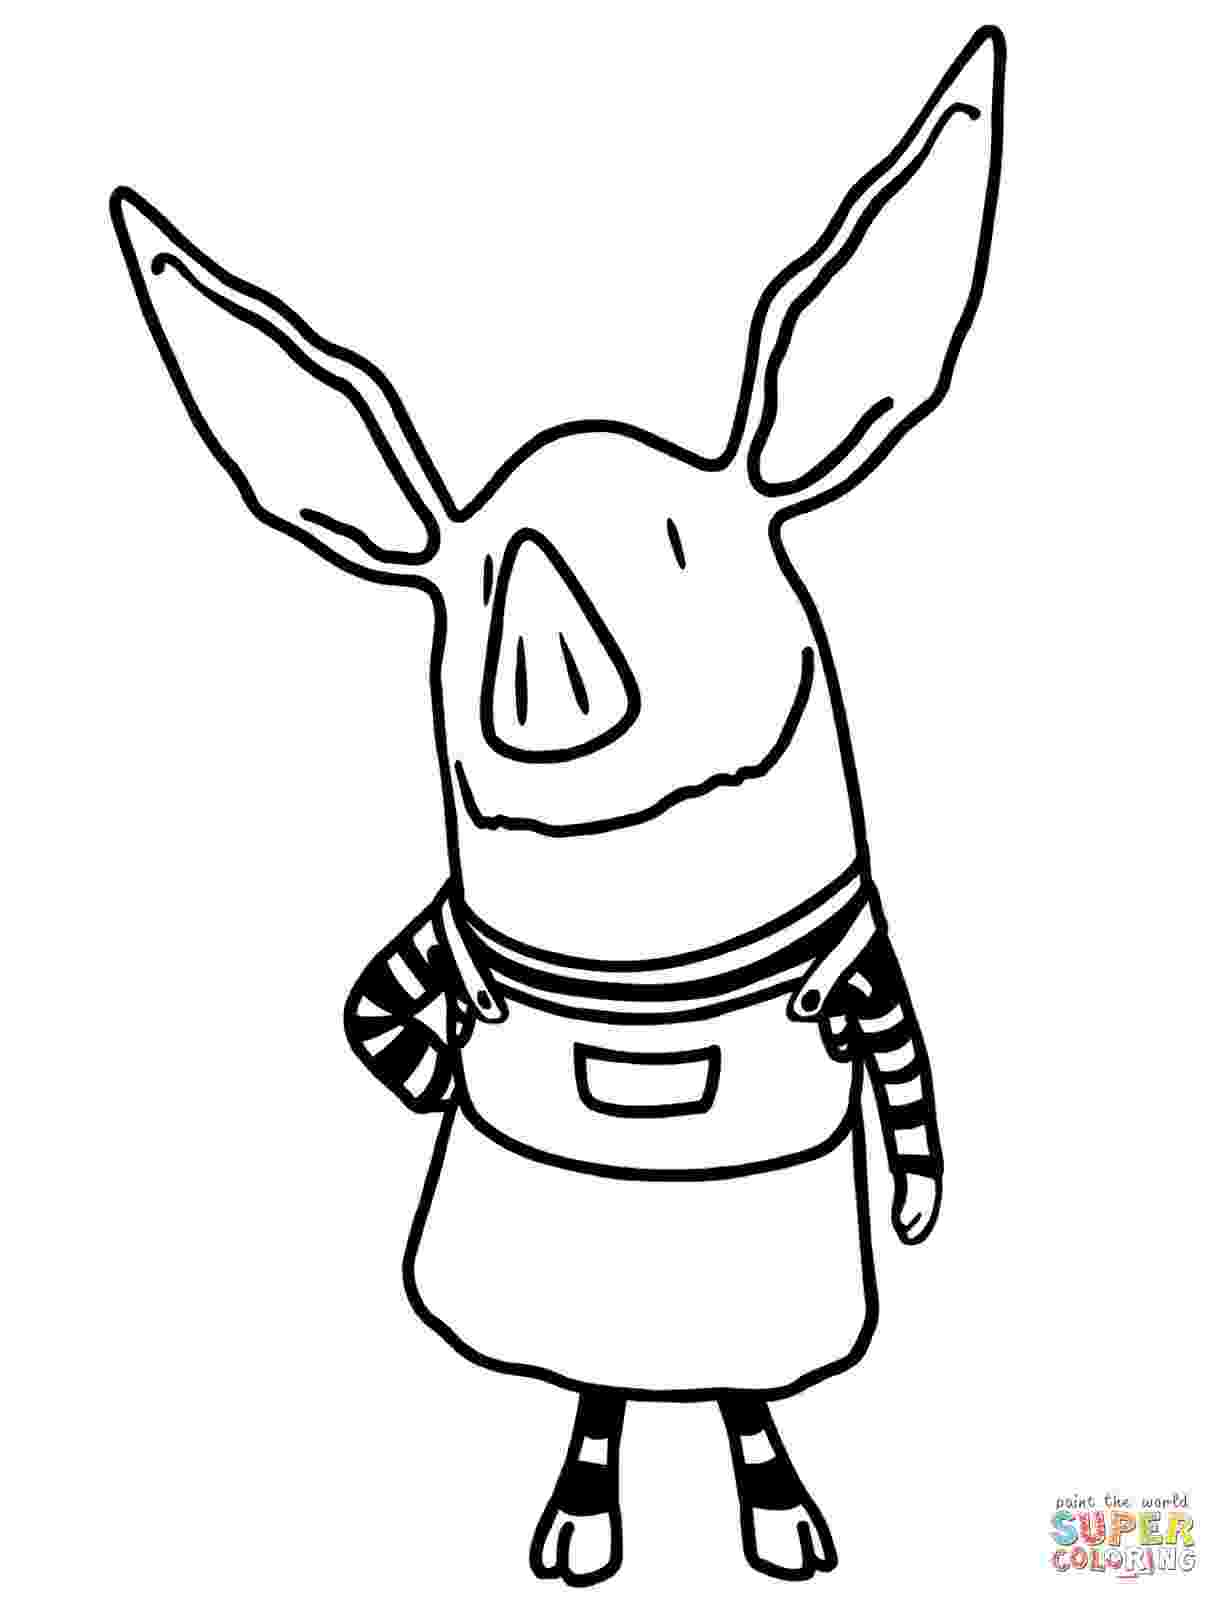 olivia coloring page olivia coloring pages to download and print for free olivia page coloring 1 1